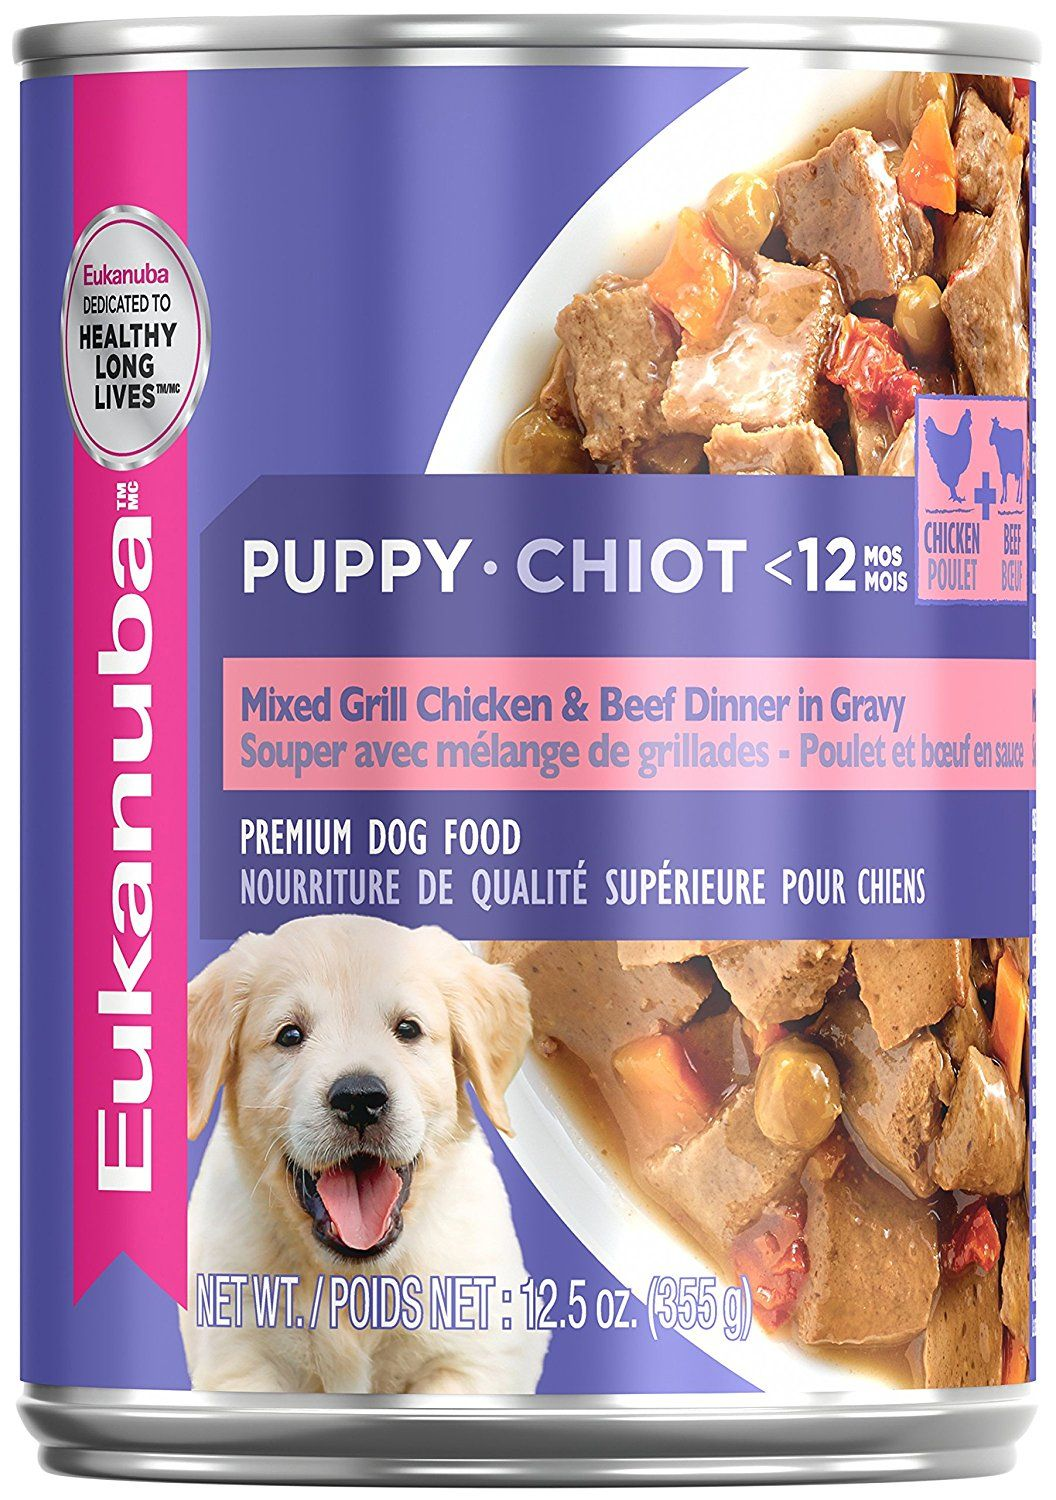 Eukanuba Wet Food Puppy Mixed Grill Chicken And Beef Dinner In Gravy Canned Dog Food Case Of 12 12 5 Oz Click Image To Review More Details Canned Dog Food